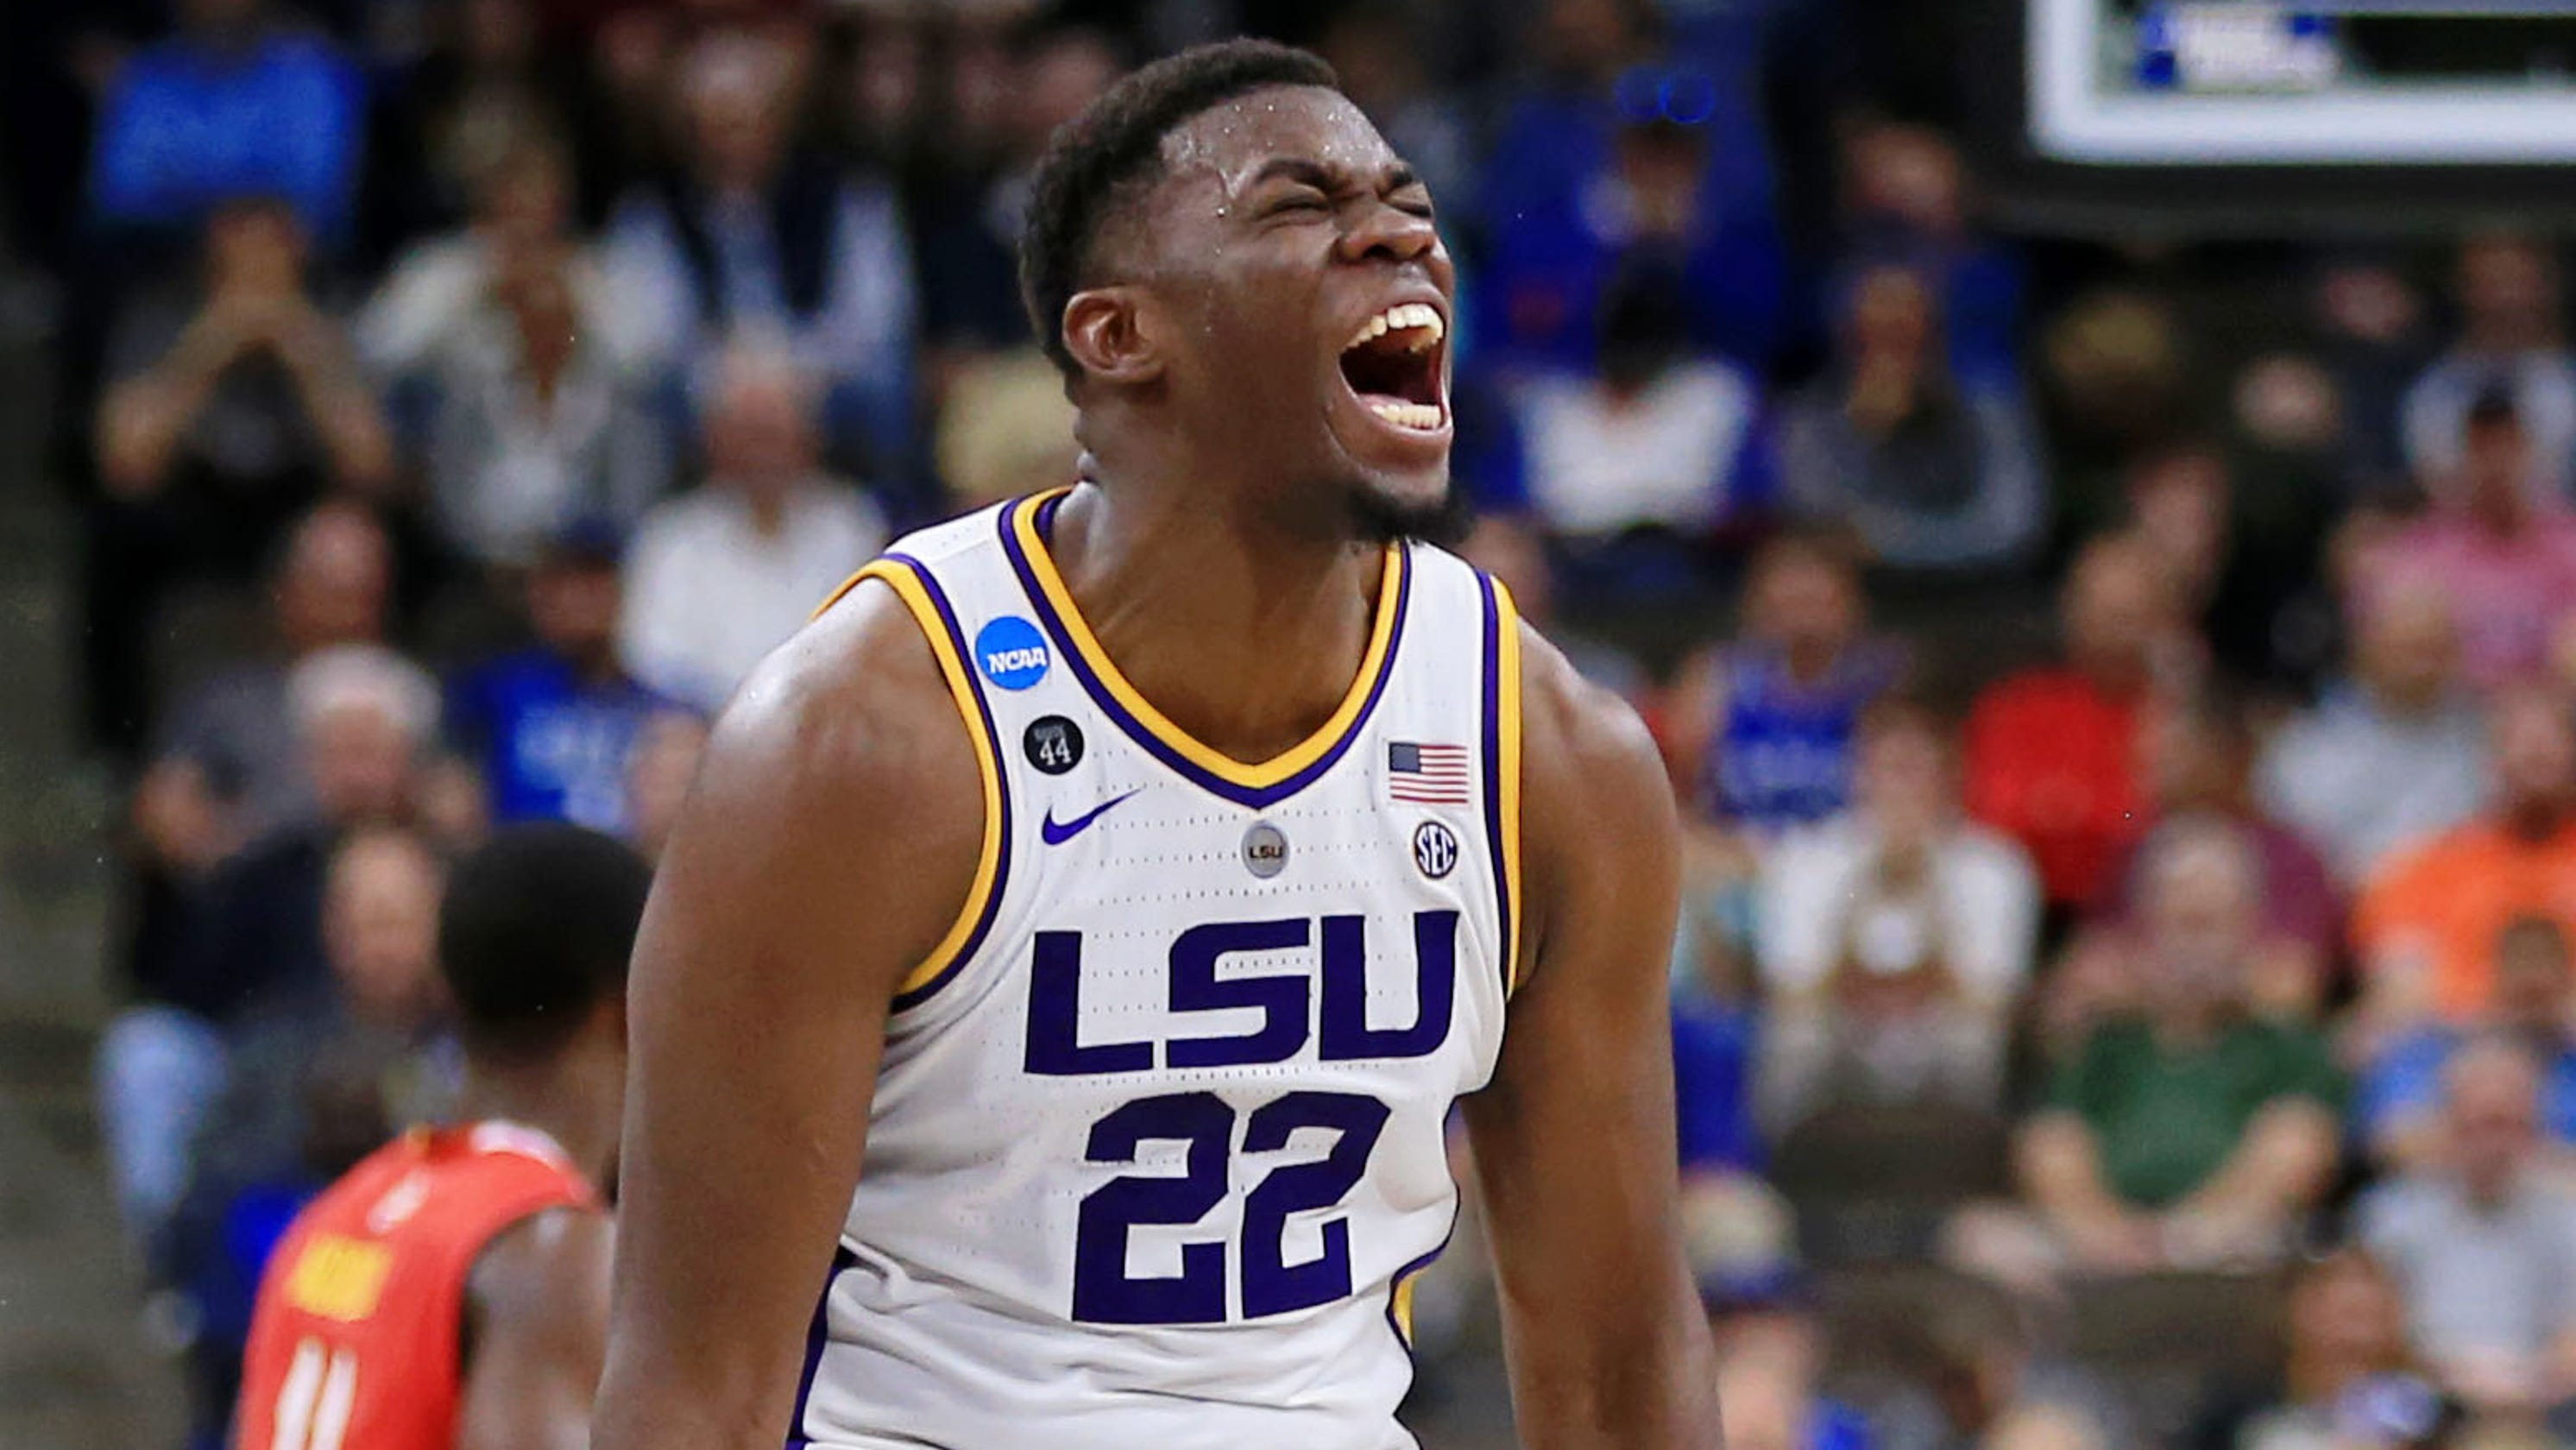 LSU knocks off Maryland with last-second shot to reach the NCAA Sweet 16 with interim coach